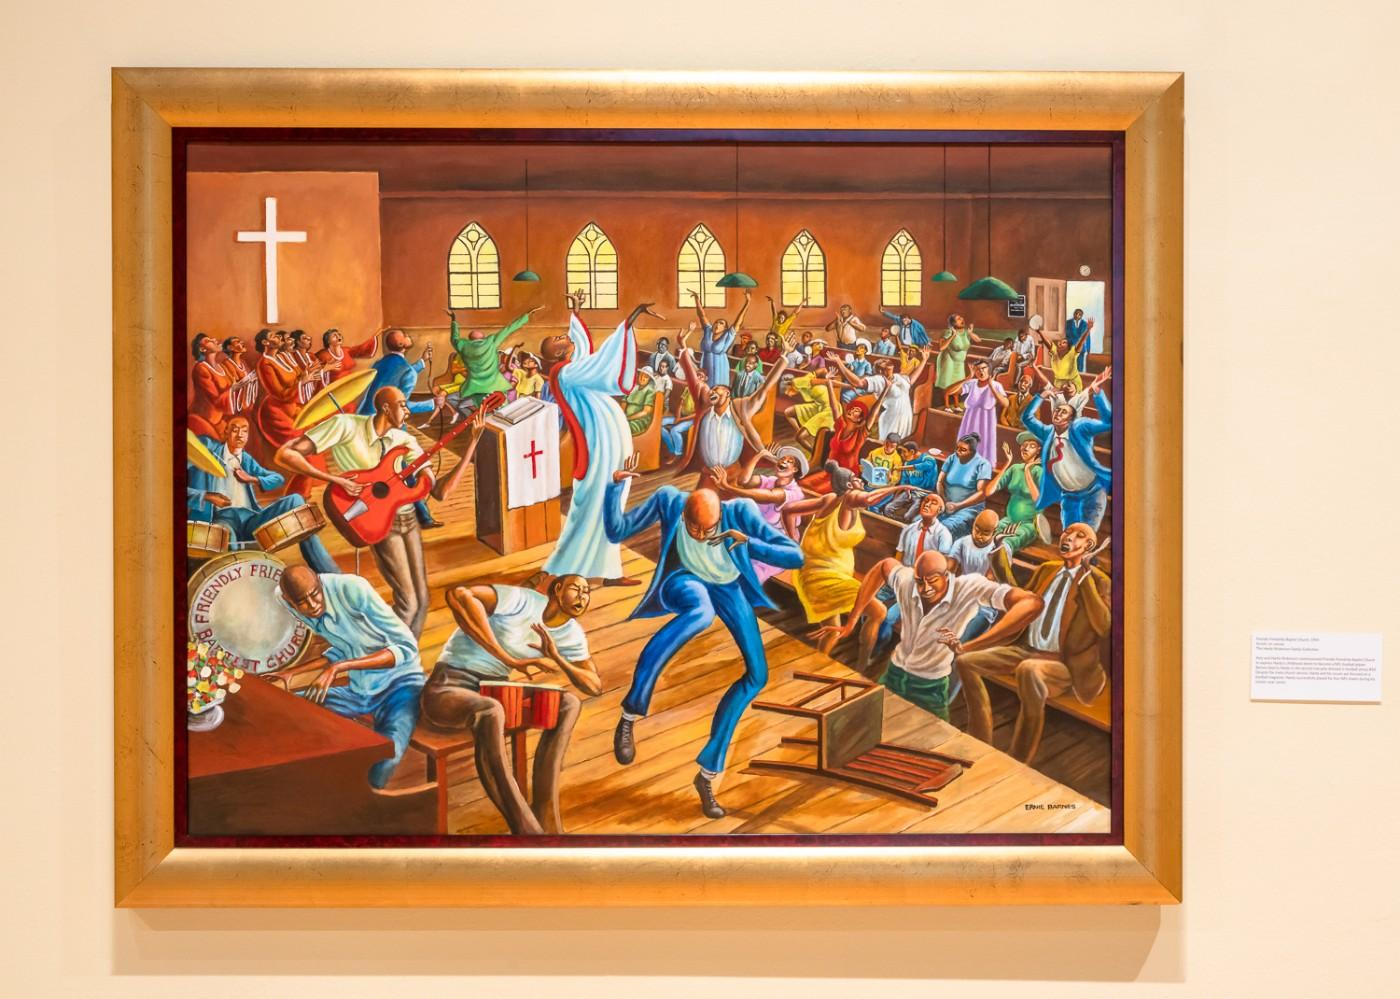 Ernie Barnes, Friendly Friendship Baptist Church, 1994. Acrylic on canvas. The Hardy Nickerson Family Collection.